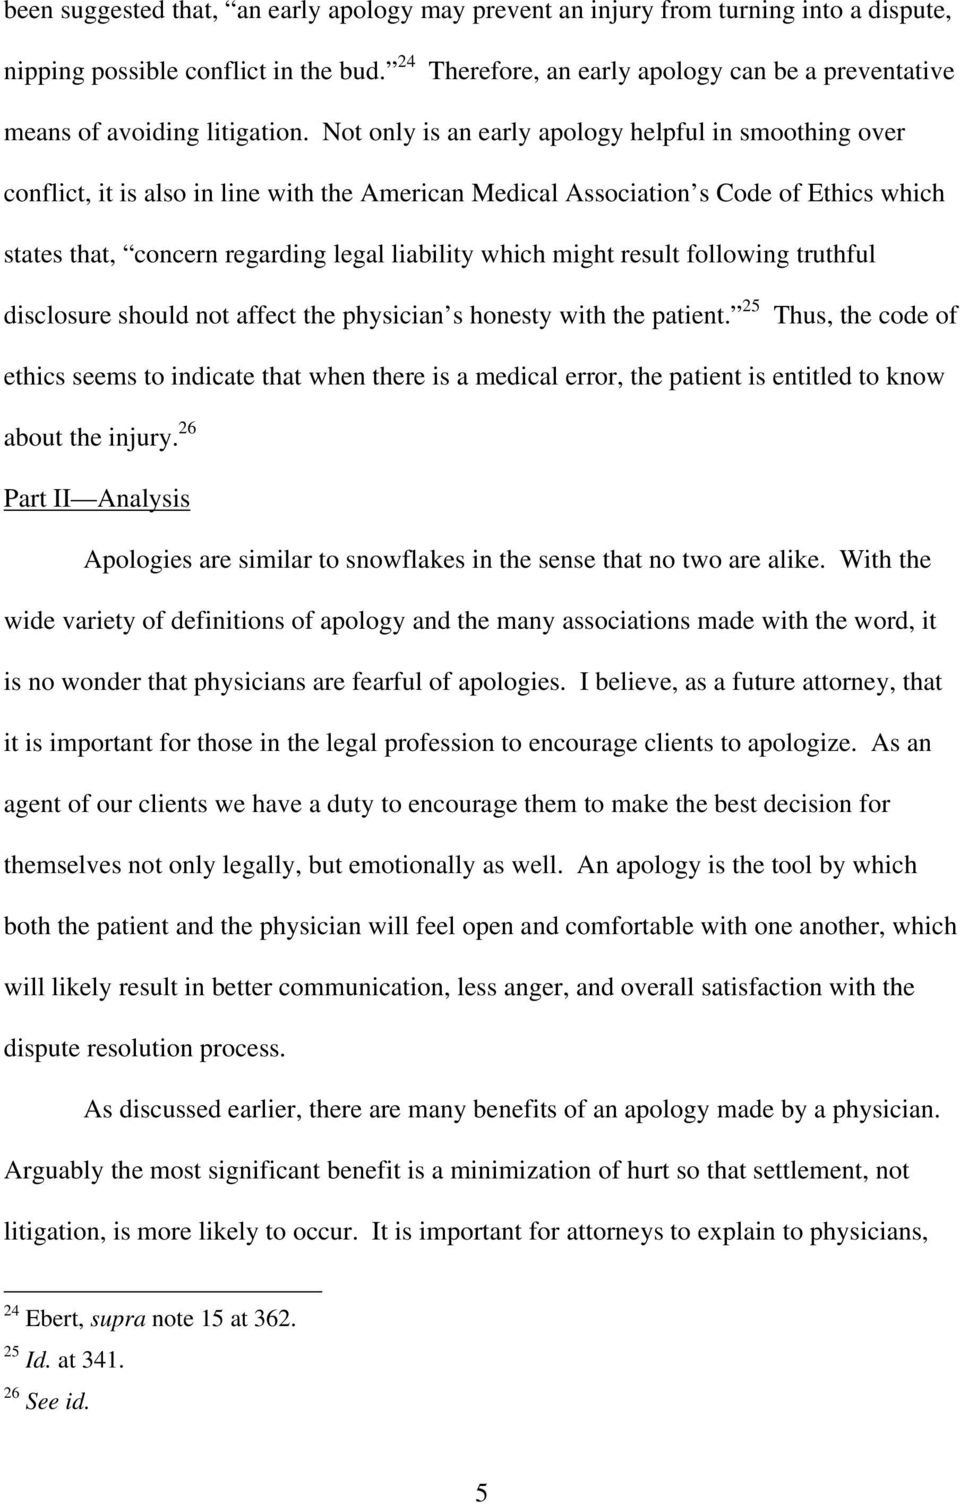 Not only is an early apology helpful in smoothing over conflict, it is also in line with the American Medical Association s Code of Ethics which states that, concern regarding legal liability which